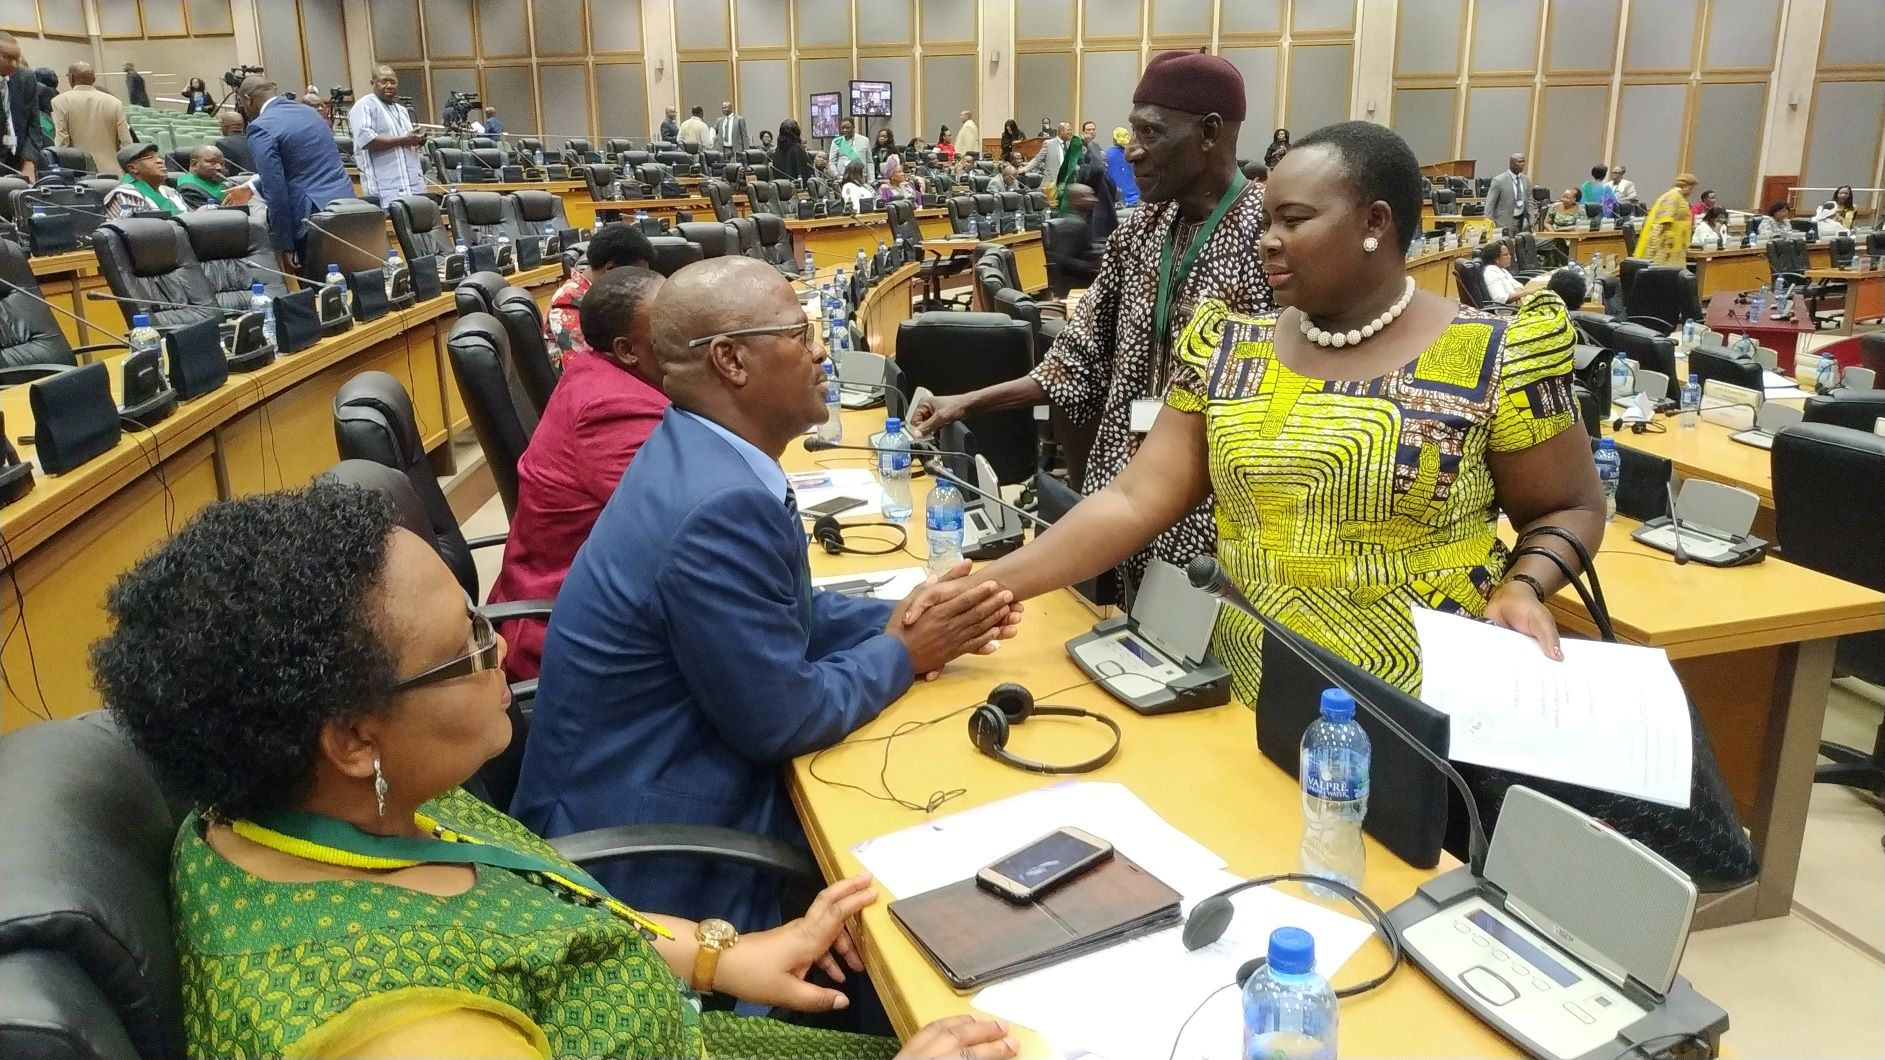 Hon. Jacquiline Amongin chatting with a colleague at the Pan African Parliament.